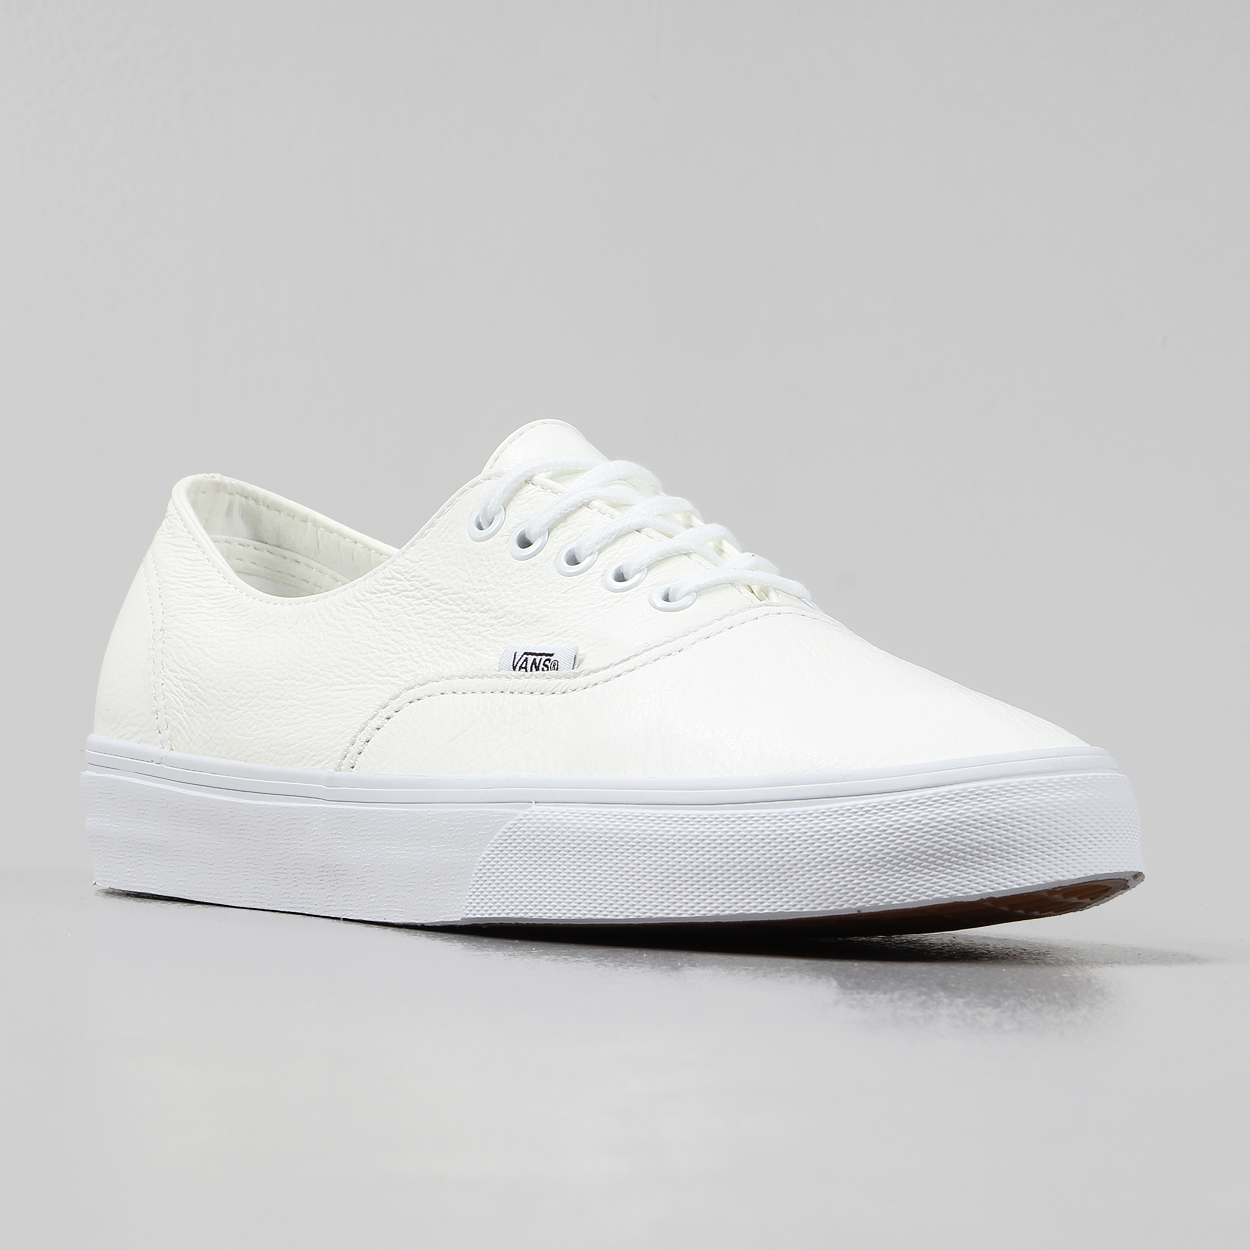 50% OFF,vans authentic white leather